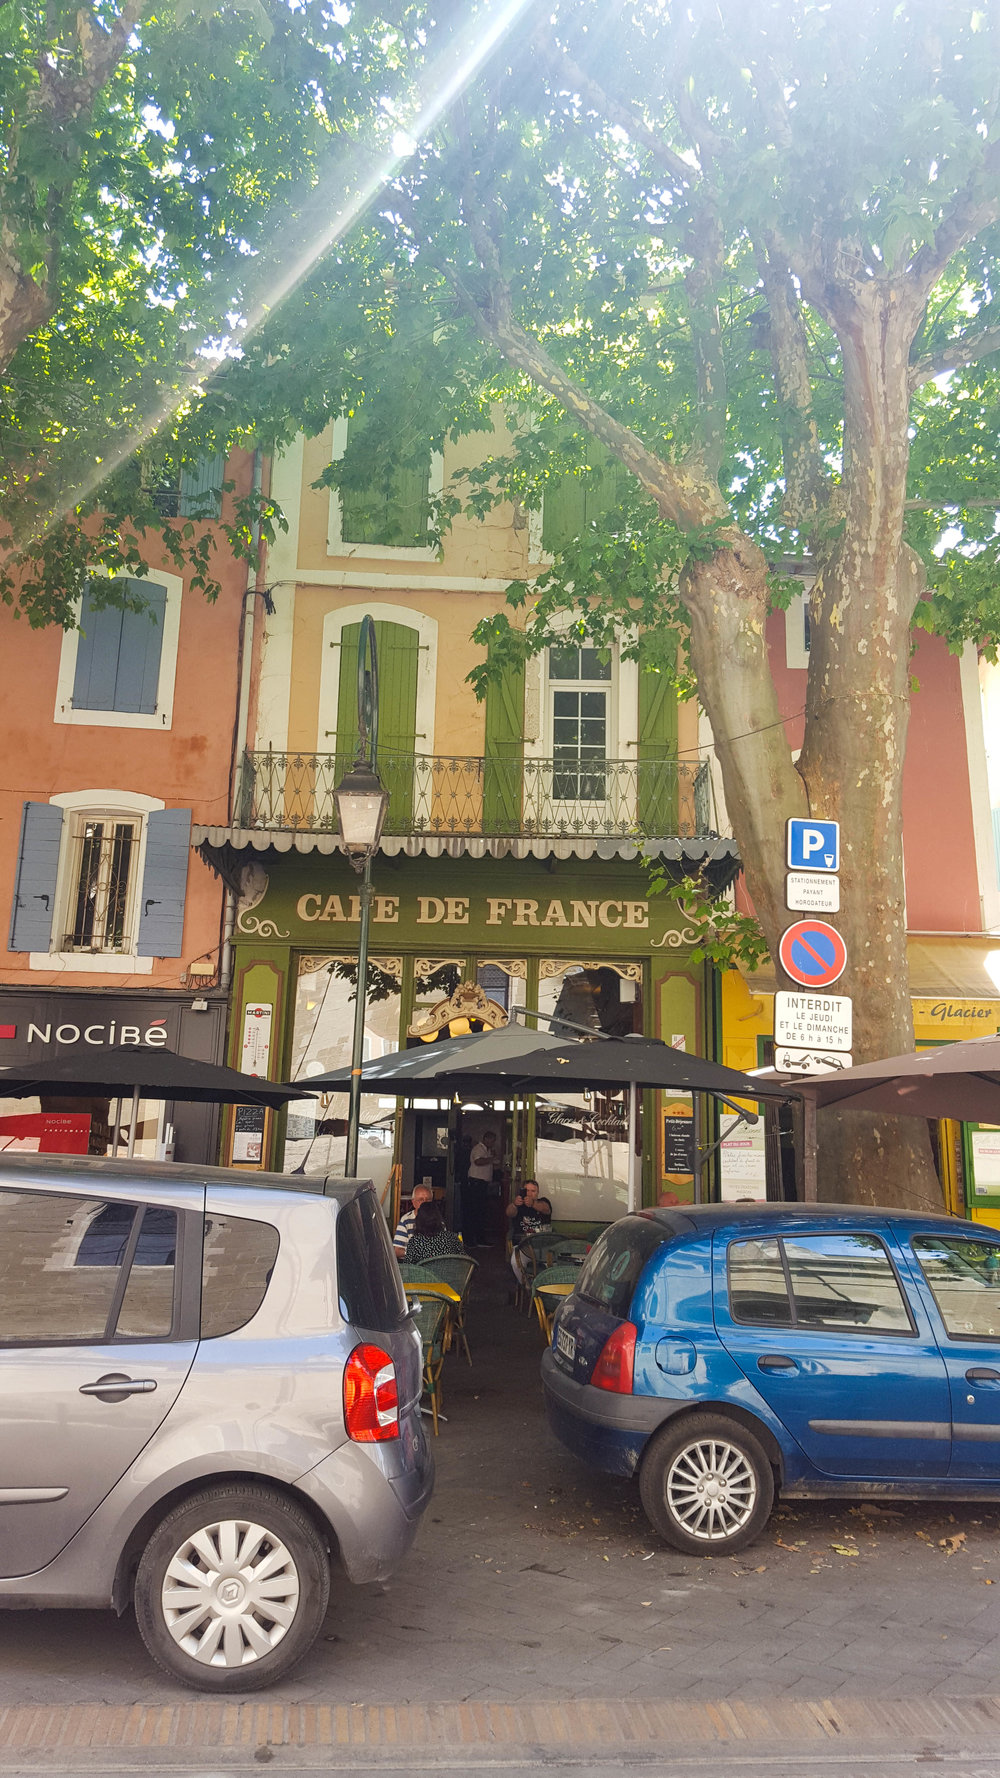 What a cliche! A delightful cafe in the nearby town of L'Isle-sur-la-Sorgue